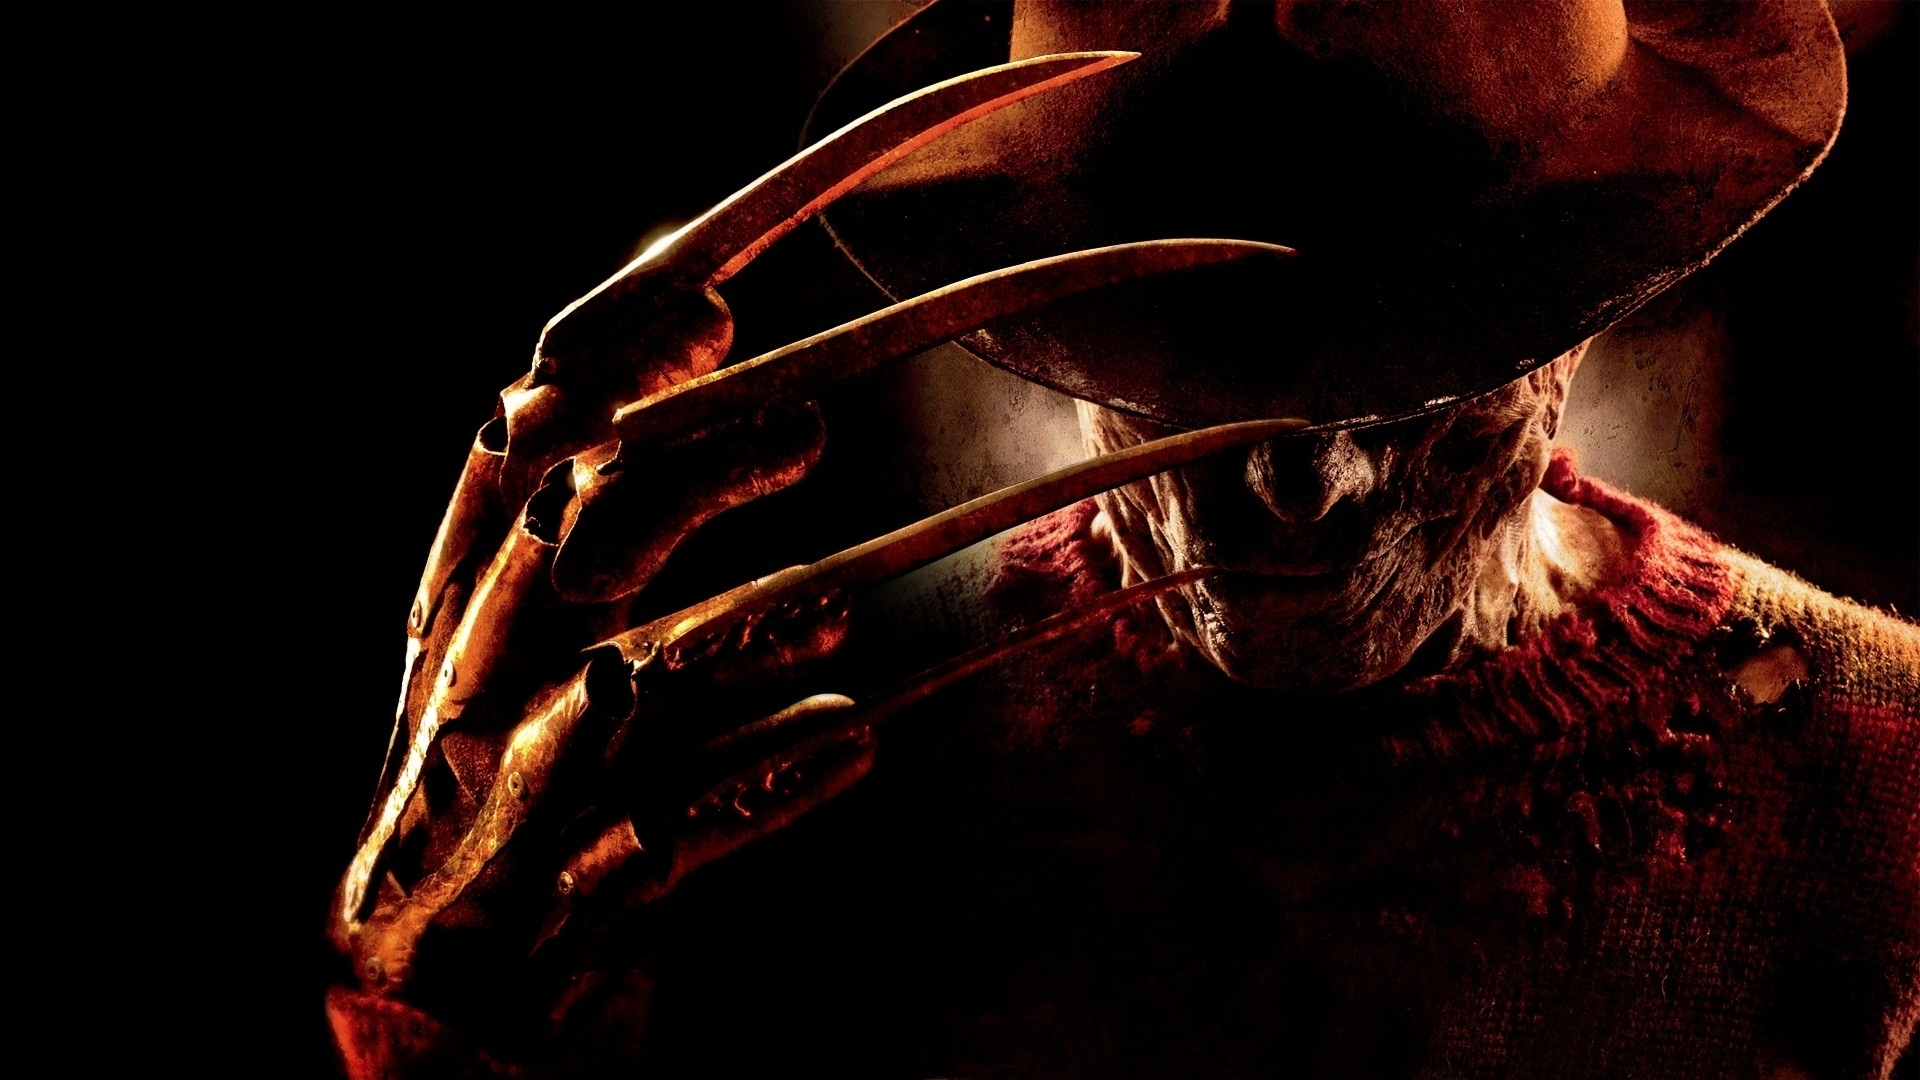 freddy krueger wallpaper hd (43+ images)